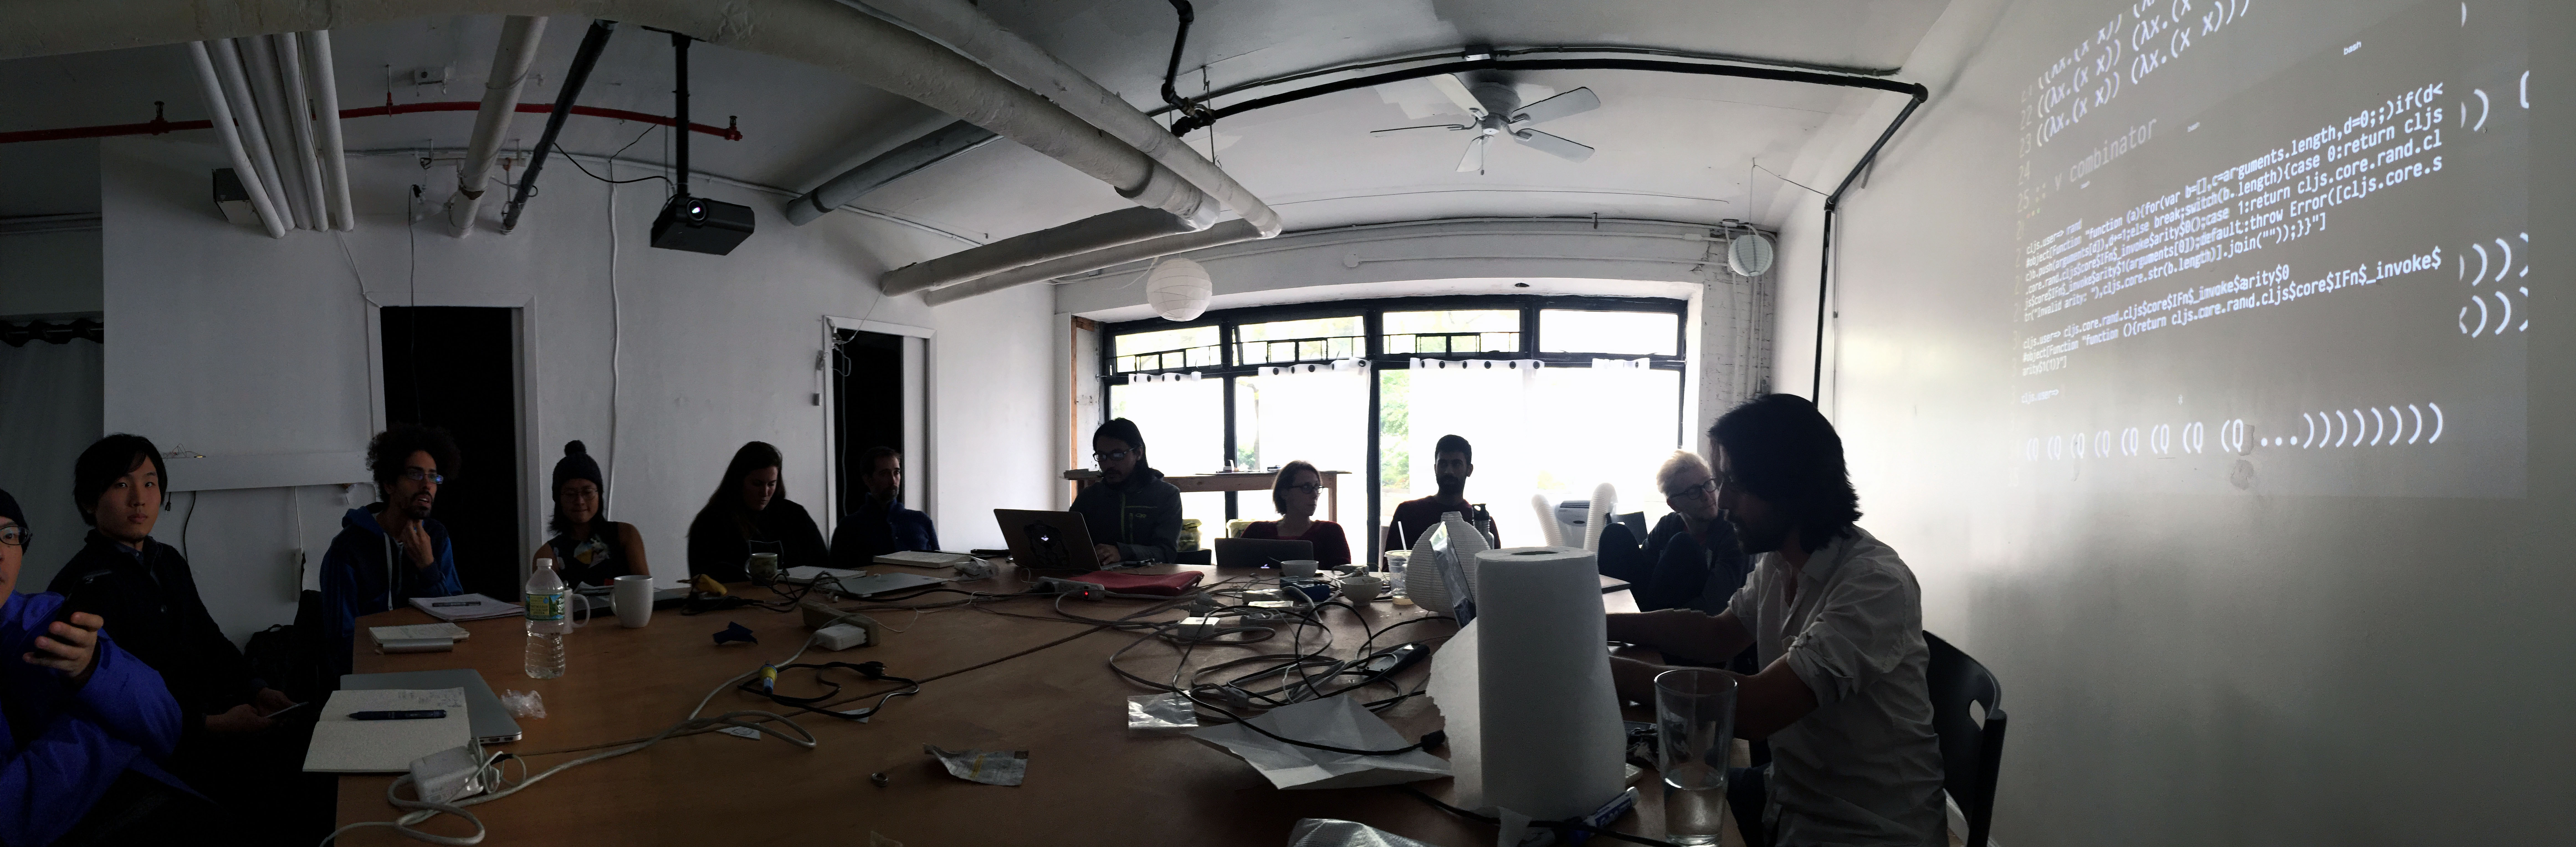 Pano of class